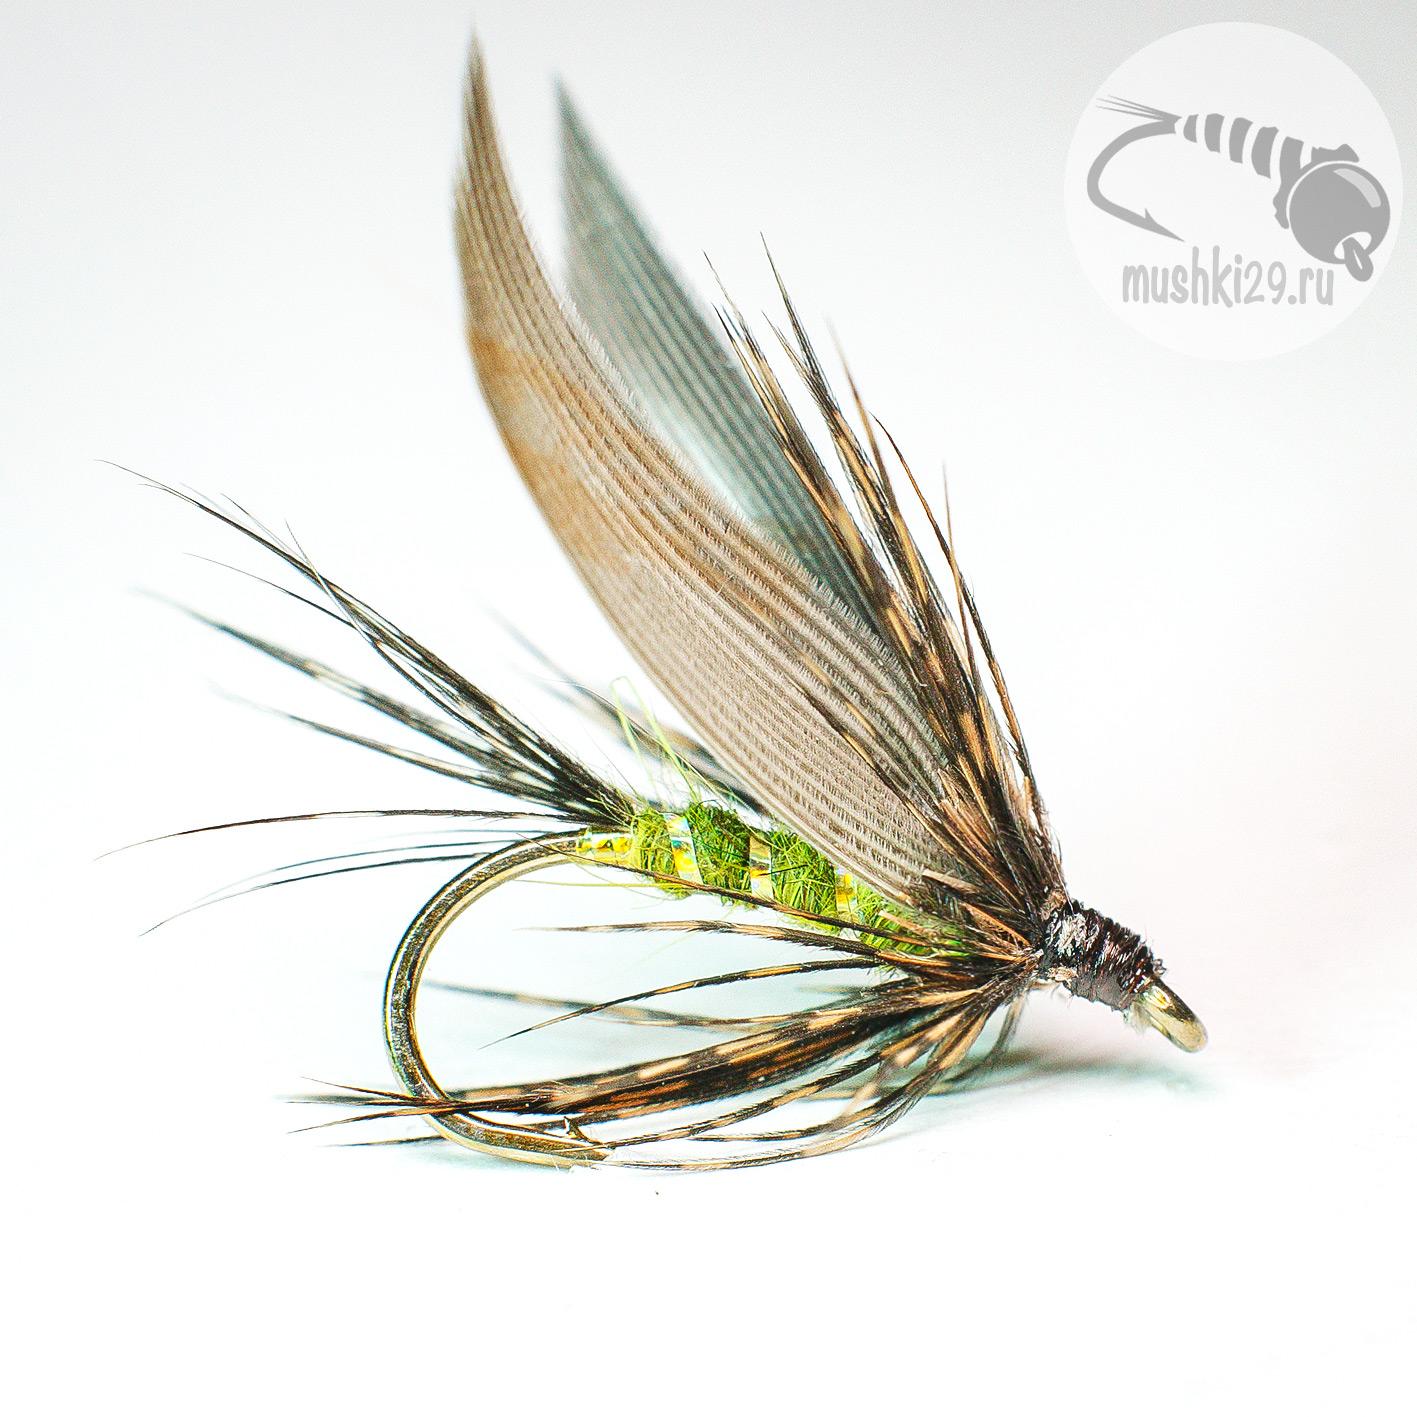 Wet green Caddis